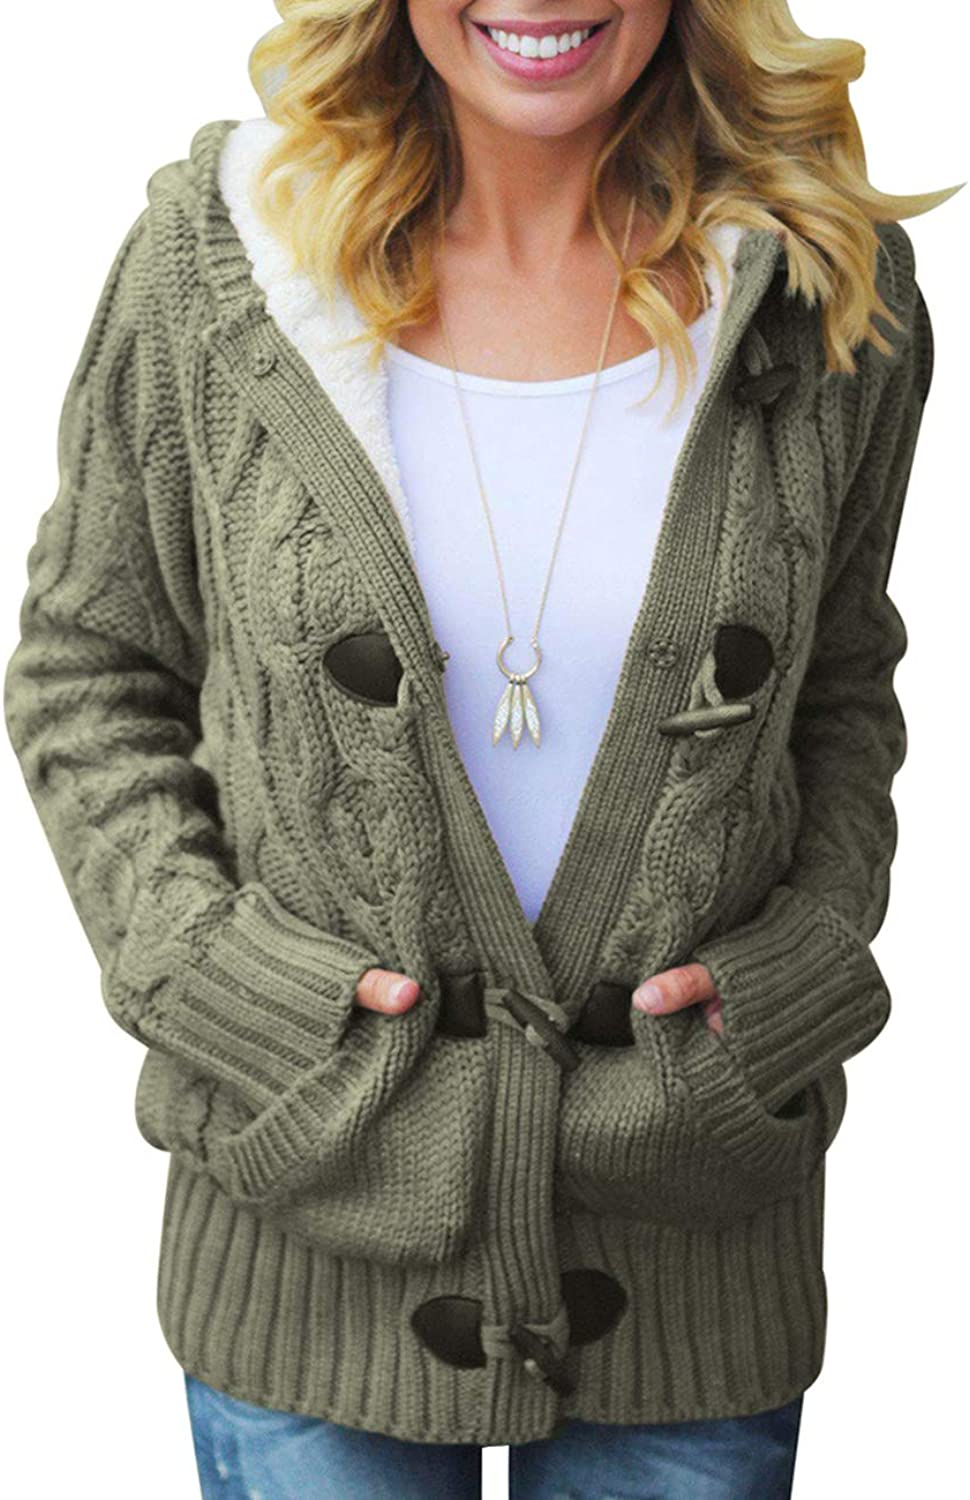 CILKOO Women Hooded Knit Cardigans Button Cable Sweater Coat Outwear Pockets(SXXL)